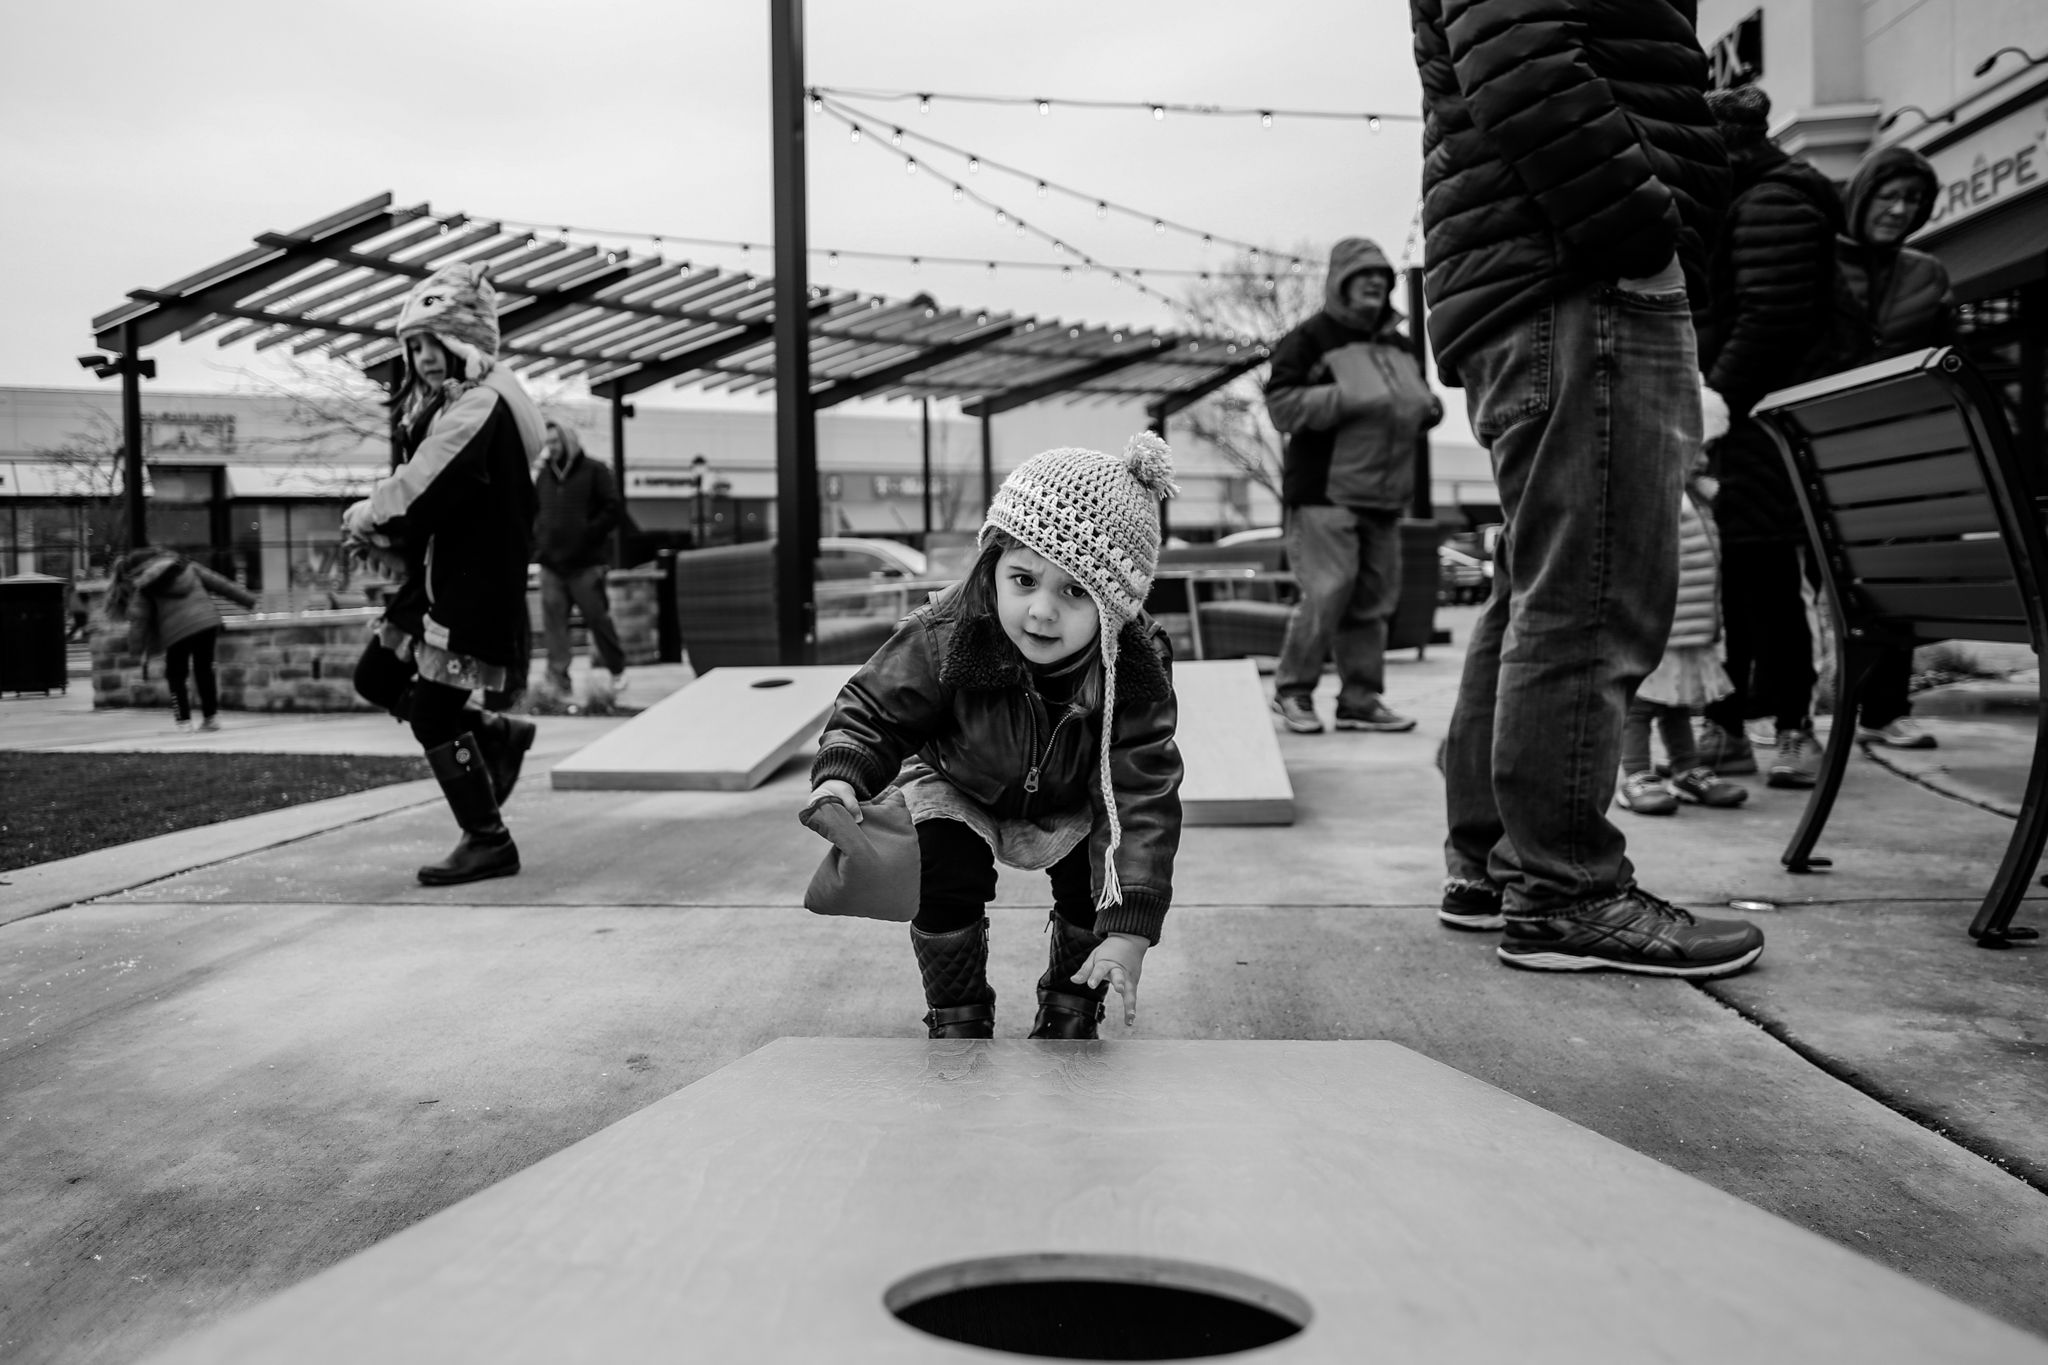 Little girl enjoying a game of cornhole during her family photography session at The Promenade Shops at Saucon Valley in Lehigh Valley, PA.